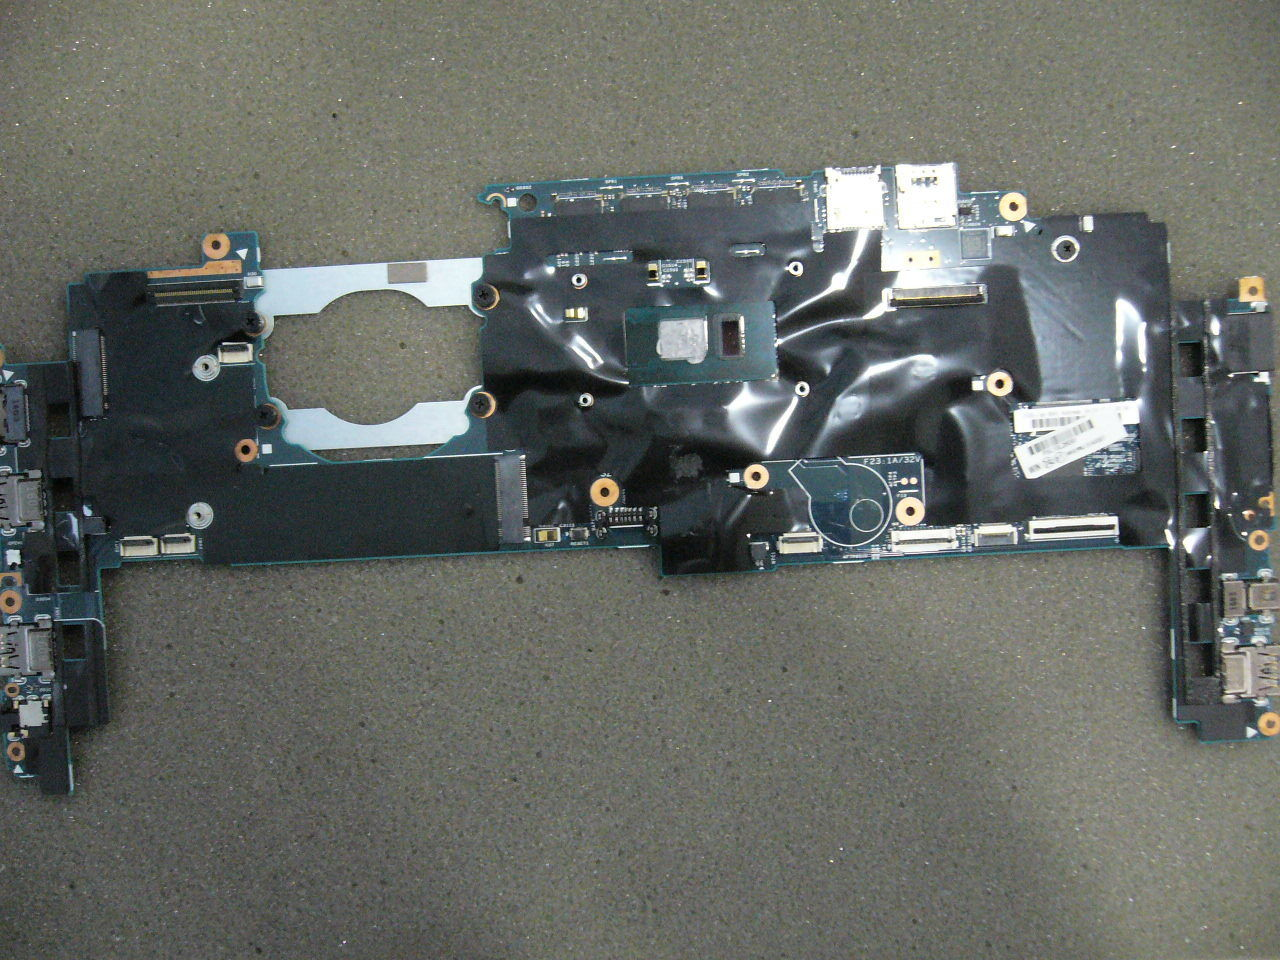 QTY 1x Lenovo Thinkpad X1 Carbon Gen 4 motherboard i5-6300U 8GB X1C